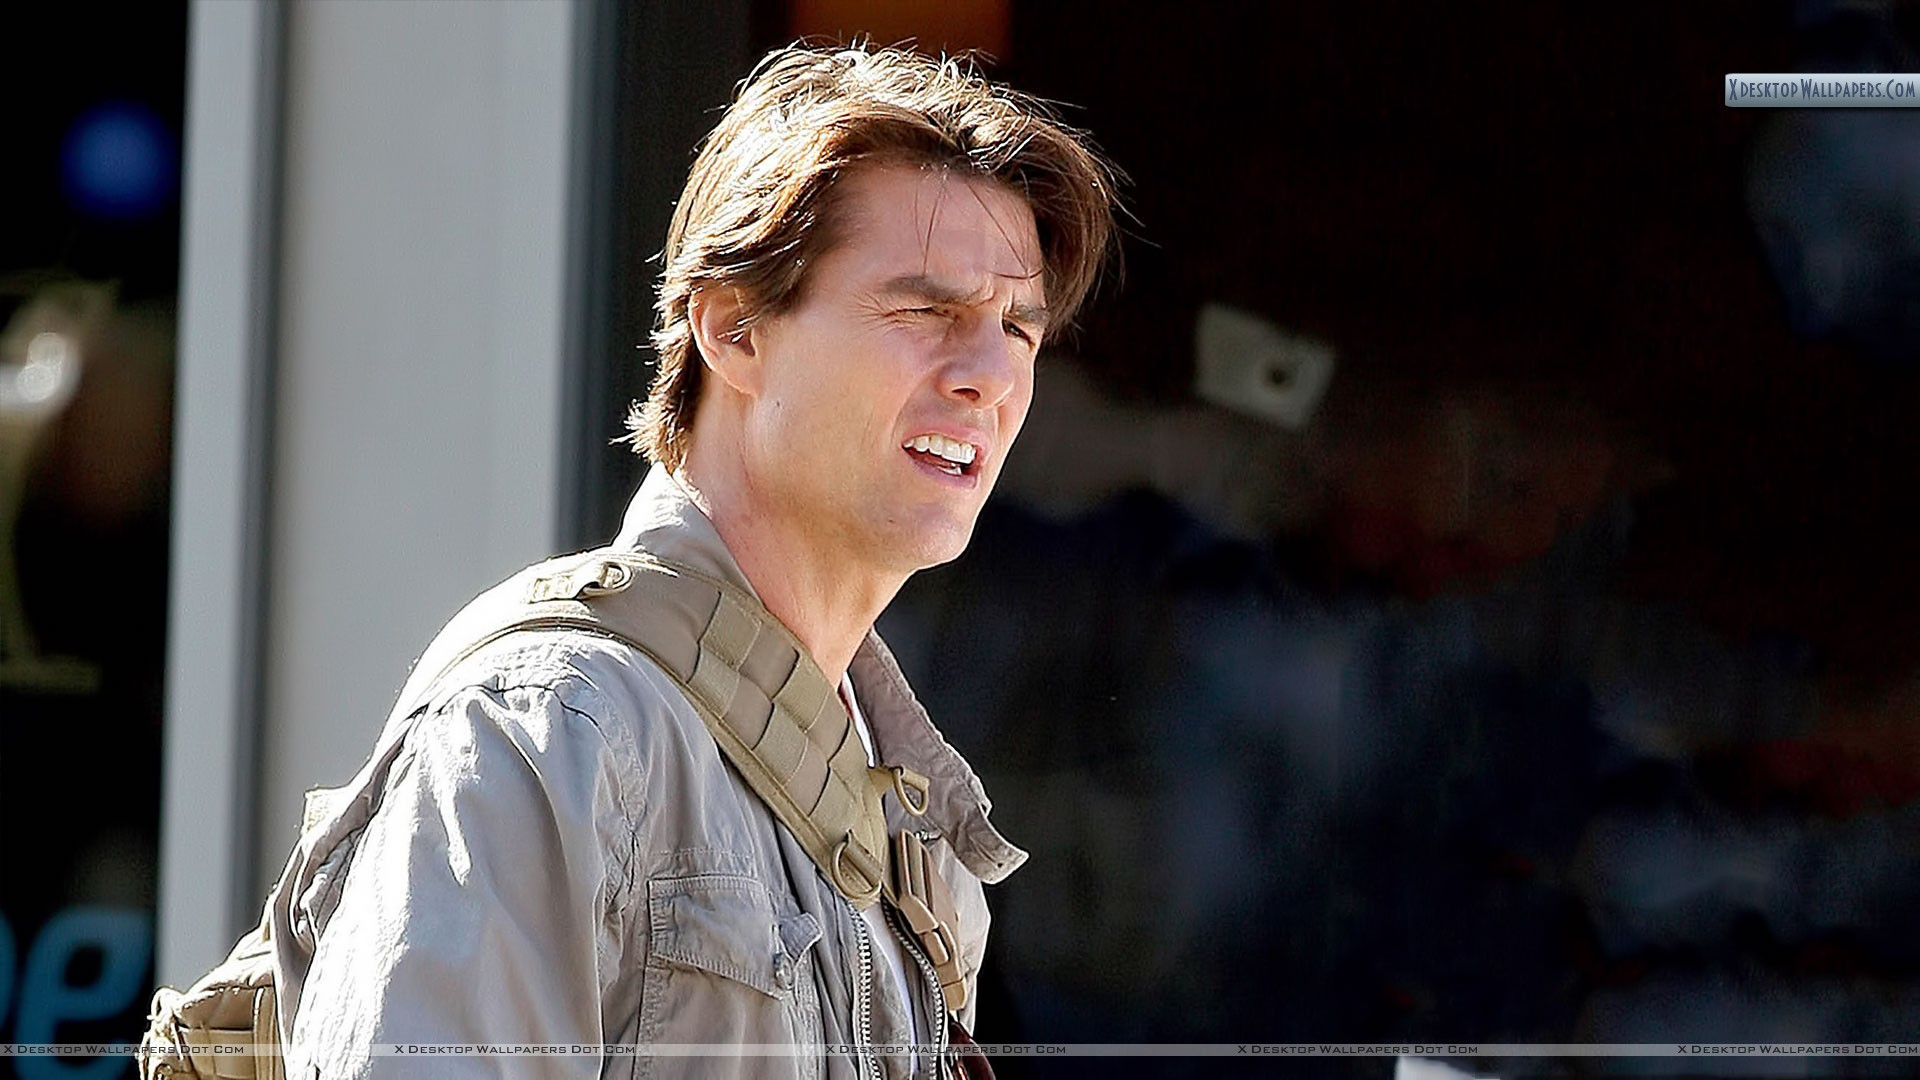 tom cruise hd wallpapers backgrounds wallpaper 1920x1080